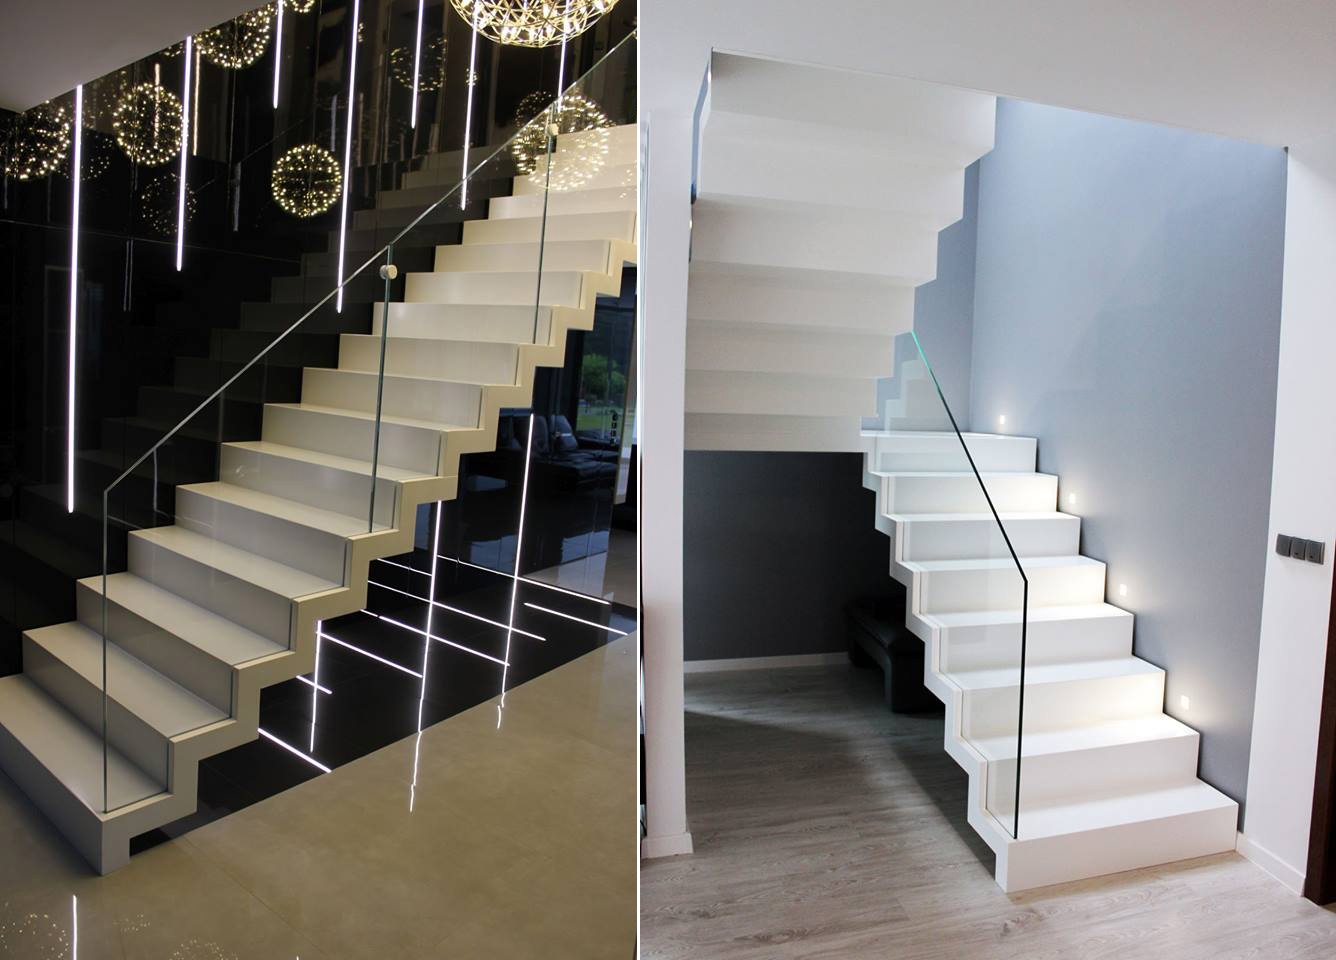 Staircases Keystone Bespoke Modern Staircases   Zig Zag Staircase Design   Stringer   Dual Staircase   Chain Staircase   Sawtooth   Steel